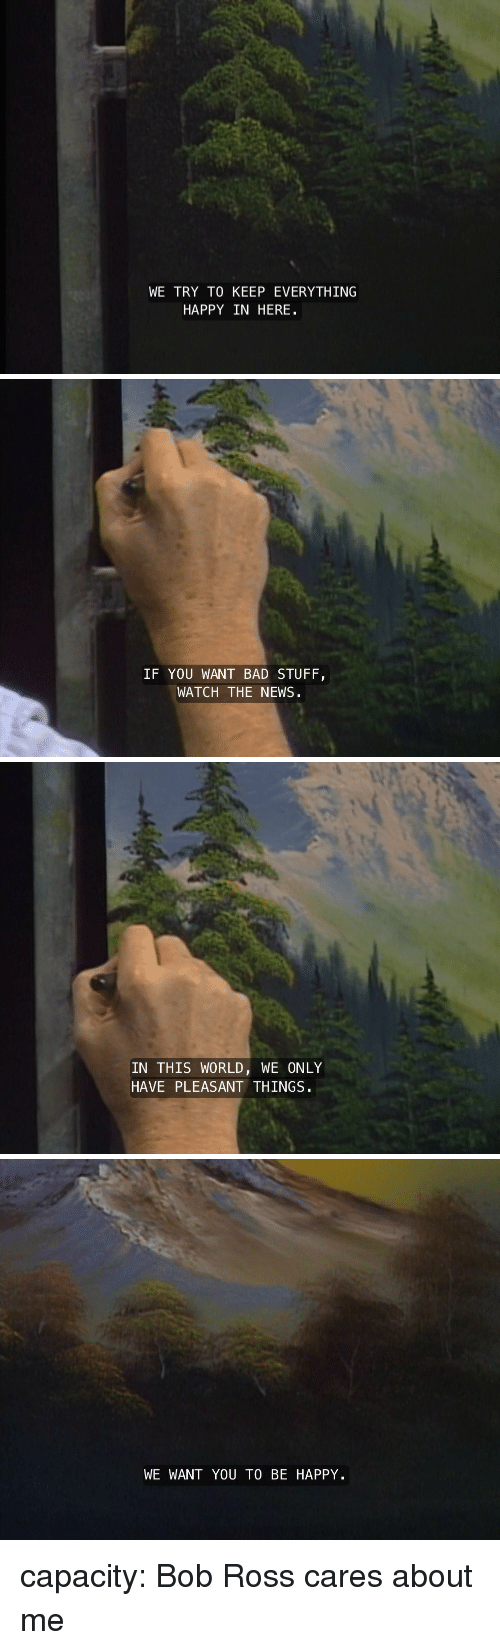 Bad, News, and Target: WE TRY TO KEEP EVERYTHING  HAPPY IN HERE   IF YOU WANT BAD STUFIF  WATCH THE NEWS   IN THIS WORLD, WE ONLY  HAVE PLEASANT THINGS   WE WANT YOU TO BE HAPPY capacity:  Bob Ross cares about me